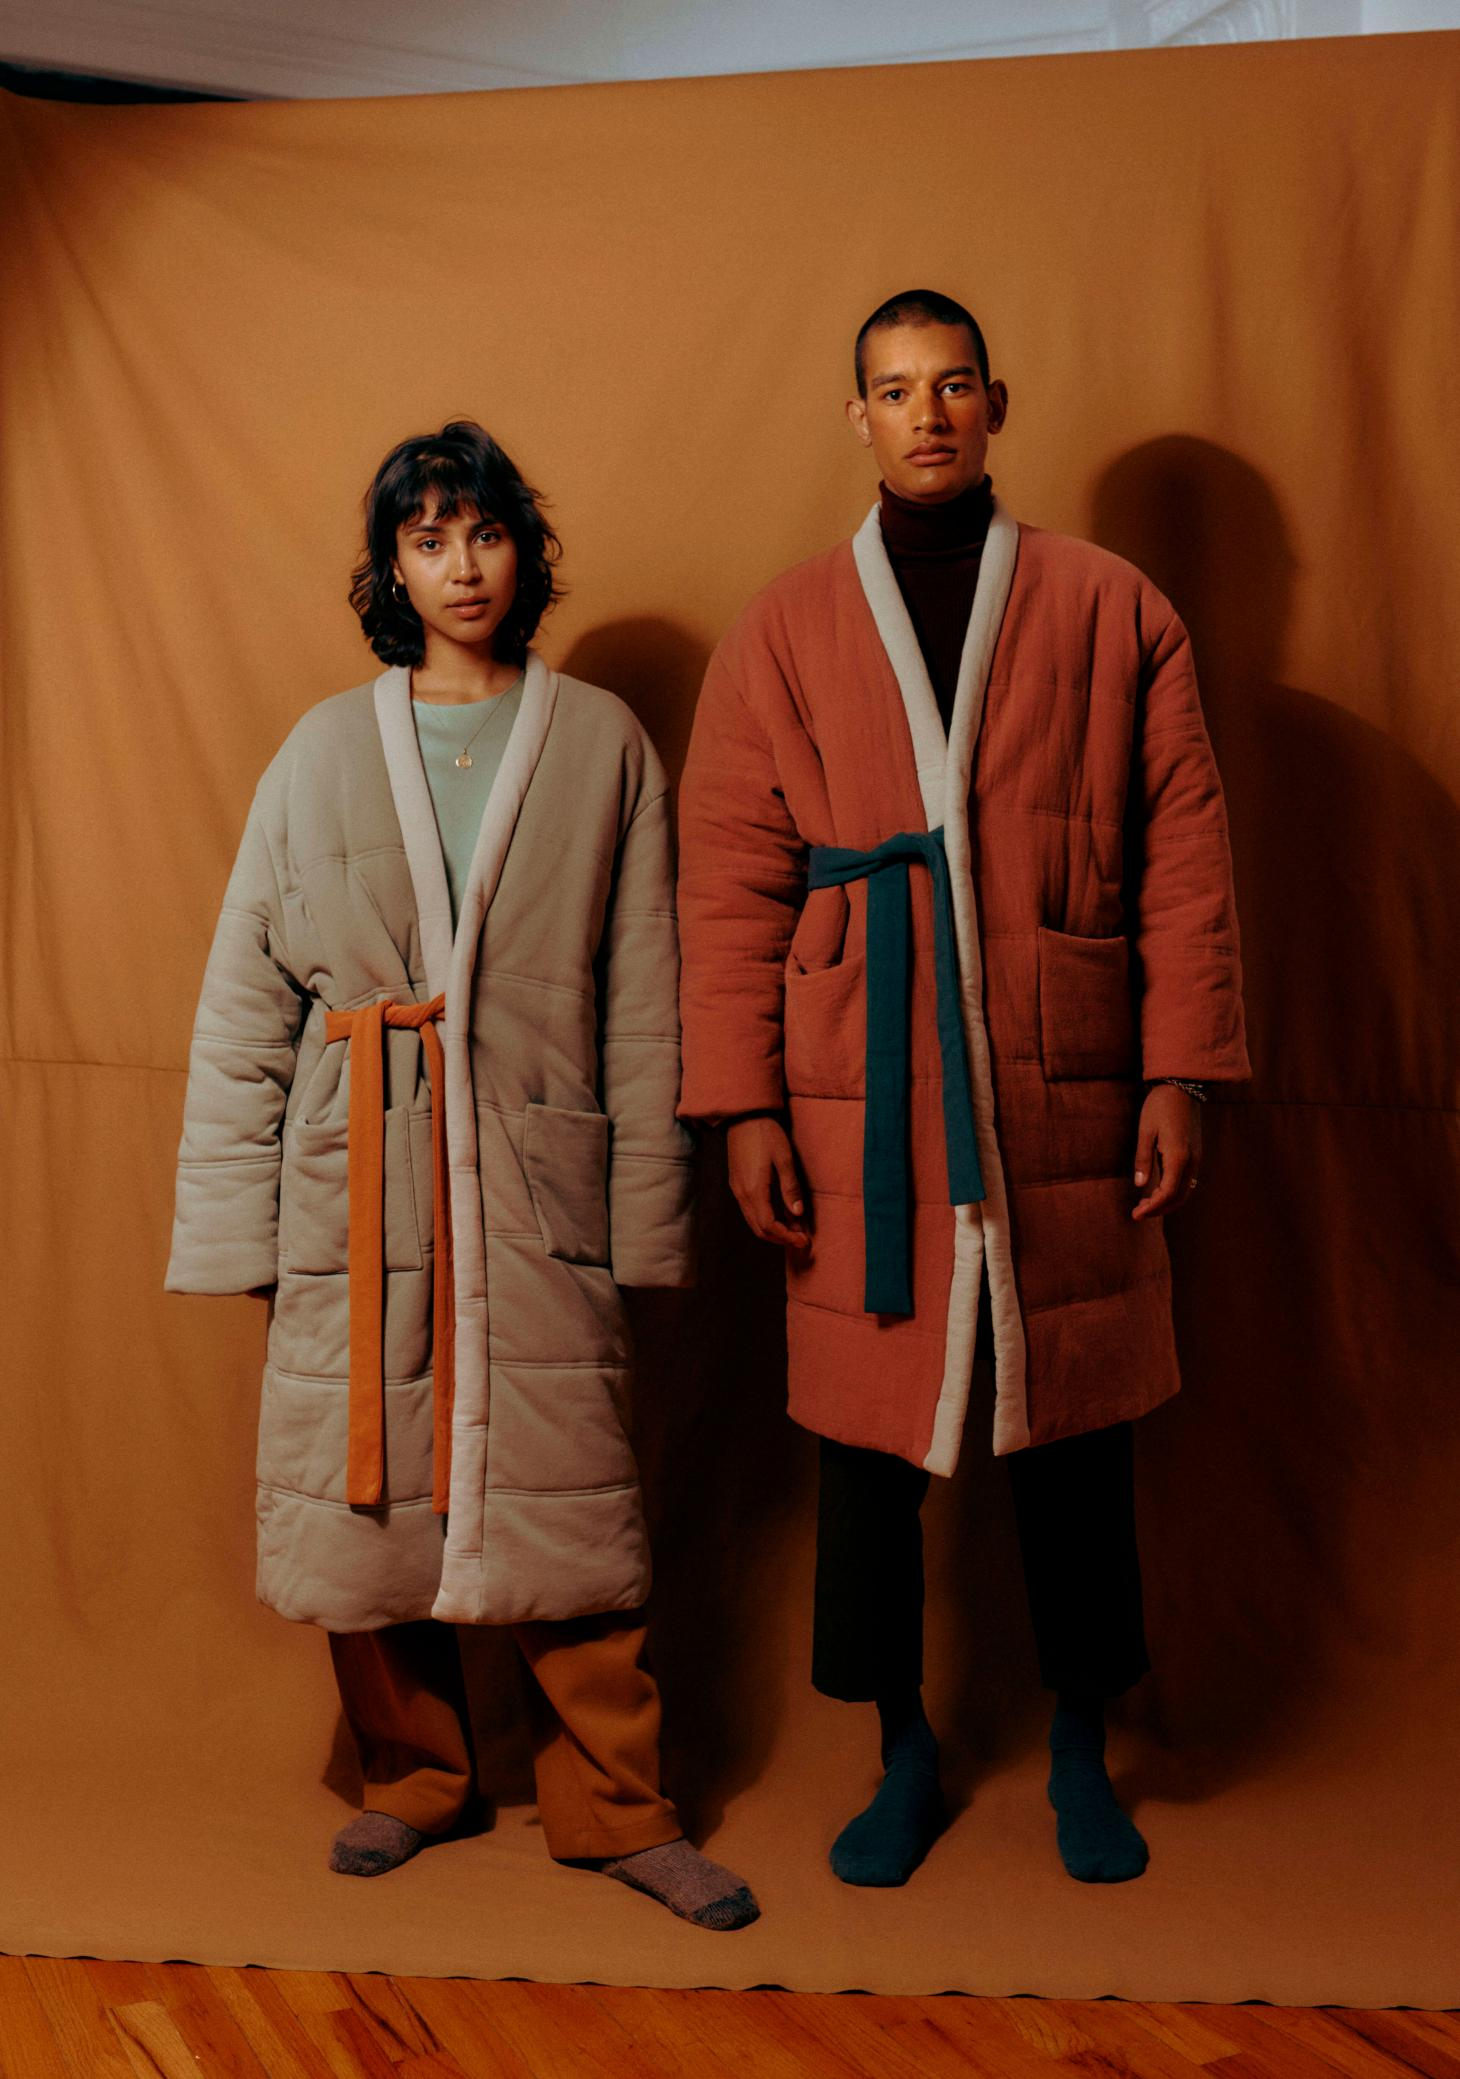 Offhours homecoat robe in Red Rock Arizona inspired colours